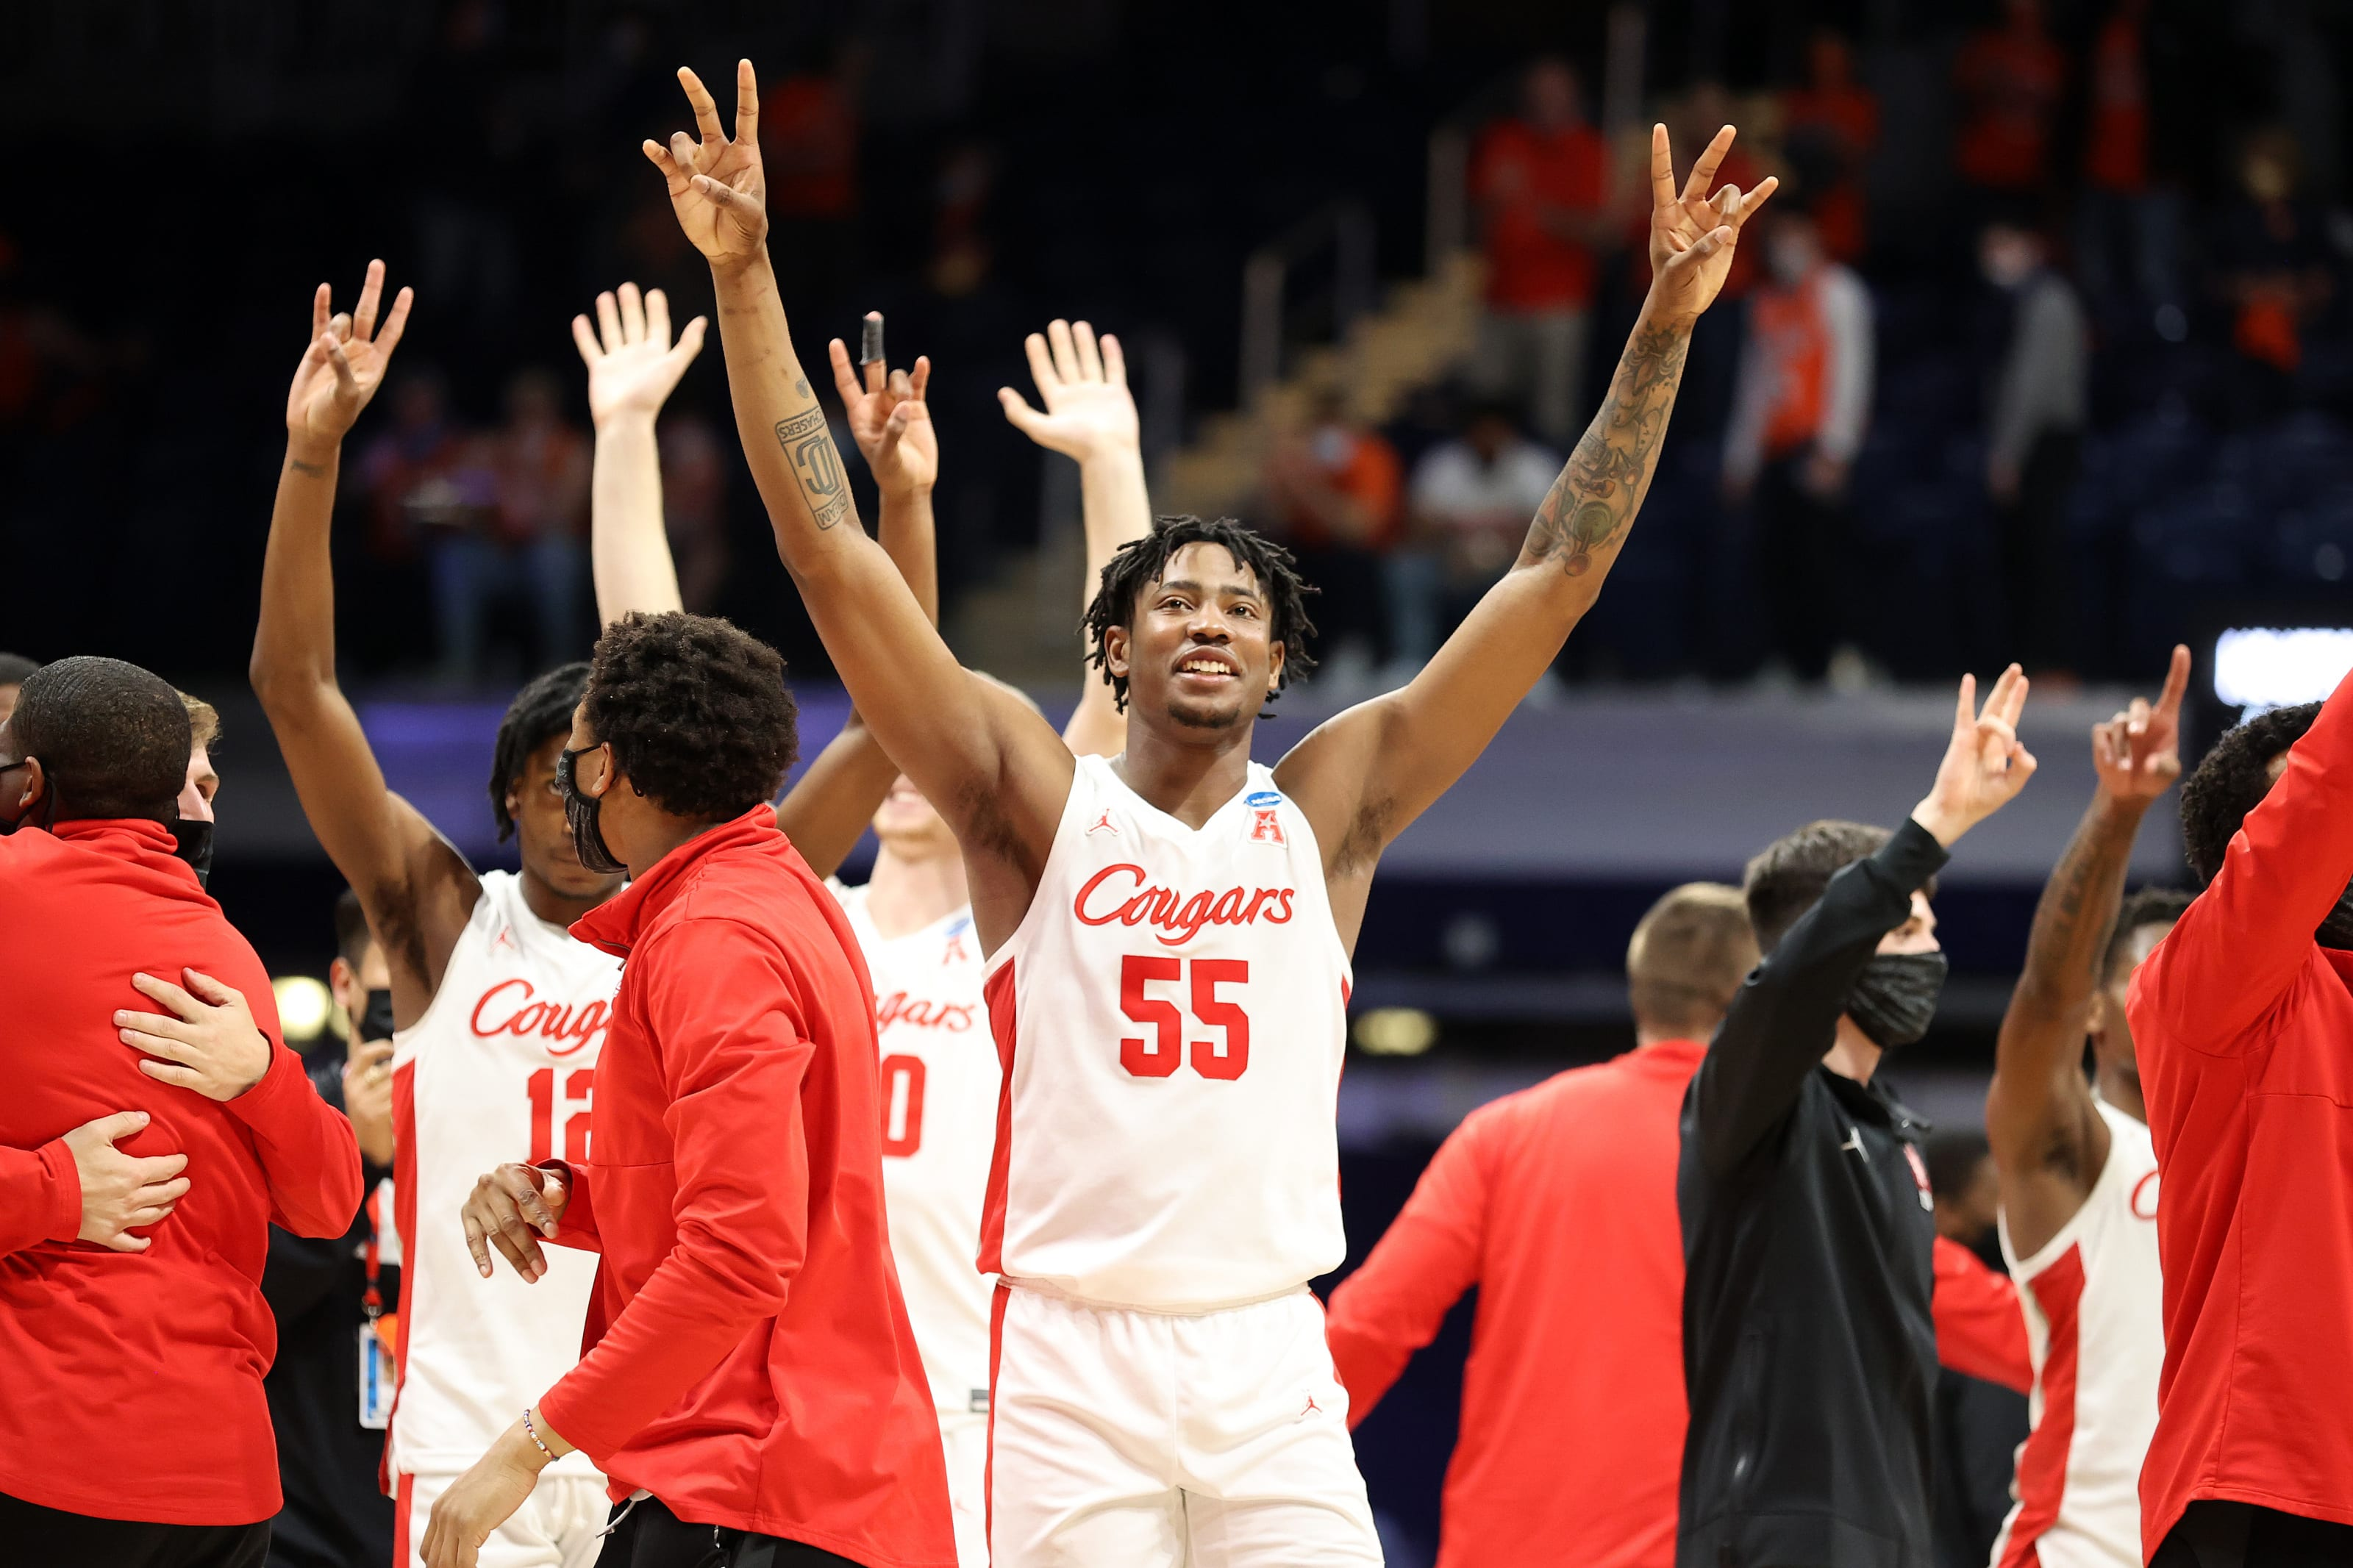 Oregon State Basketball must limit Houston's rebounding opportunities